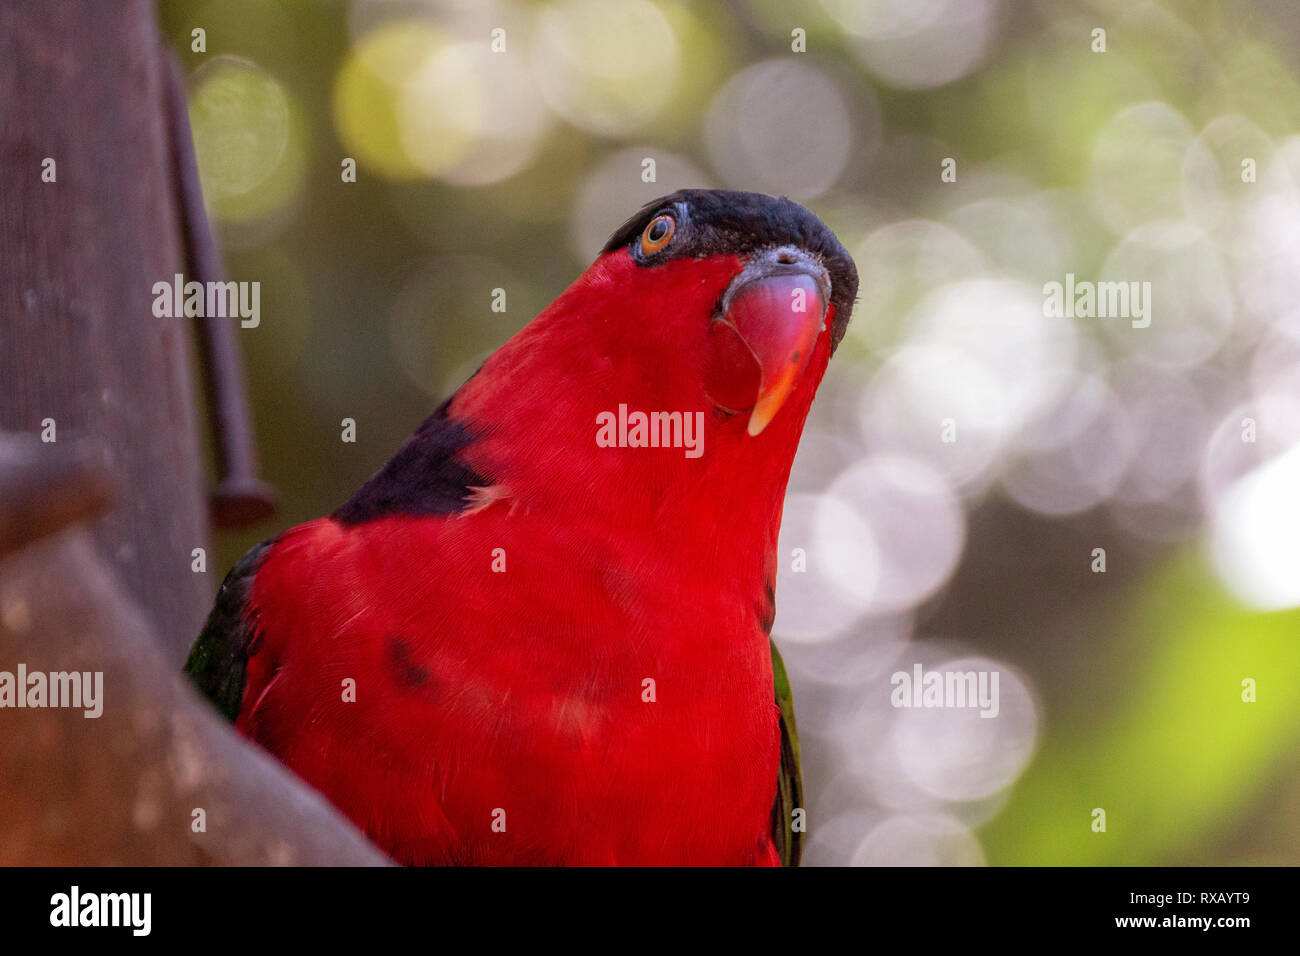 A close up view of a red and black lorikeet on a wooden purch watching the sky - Stock Image